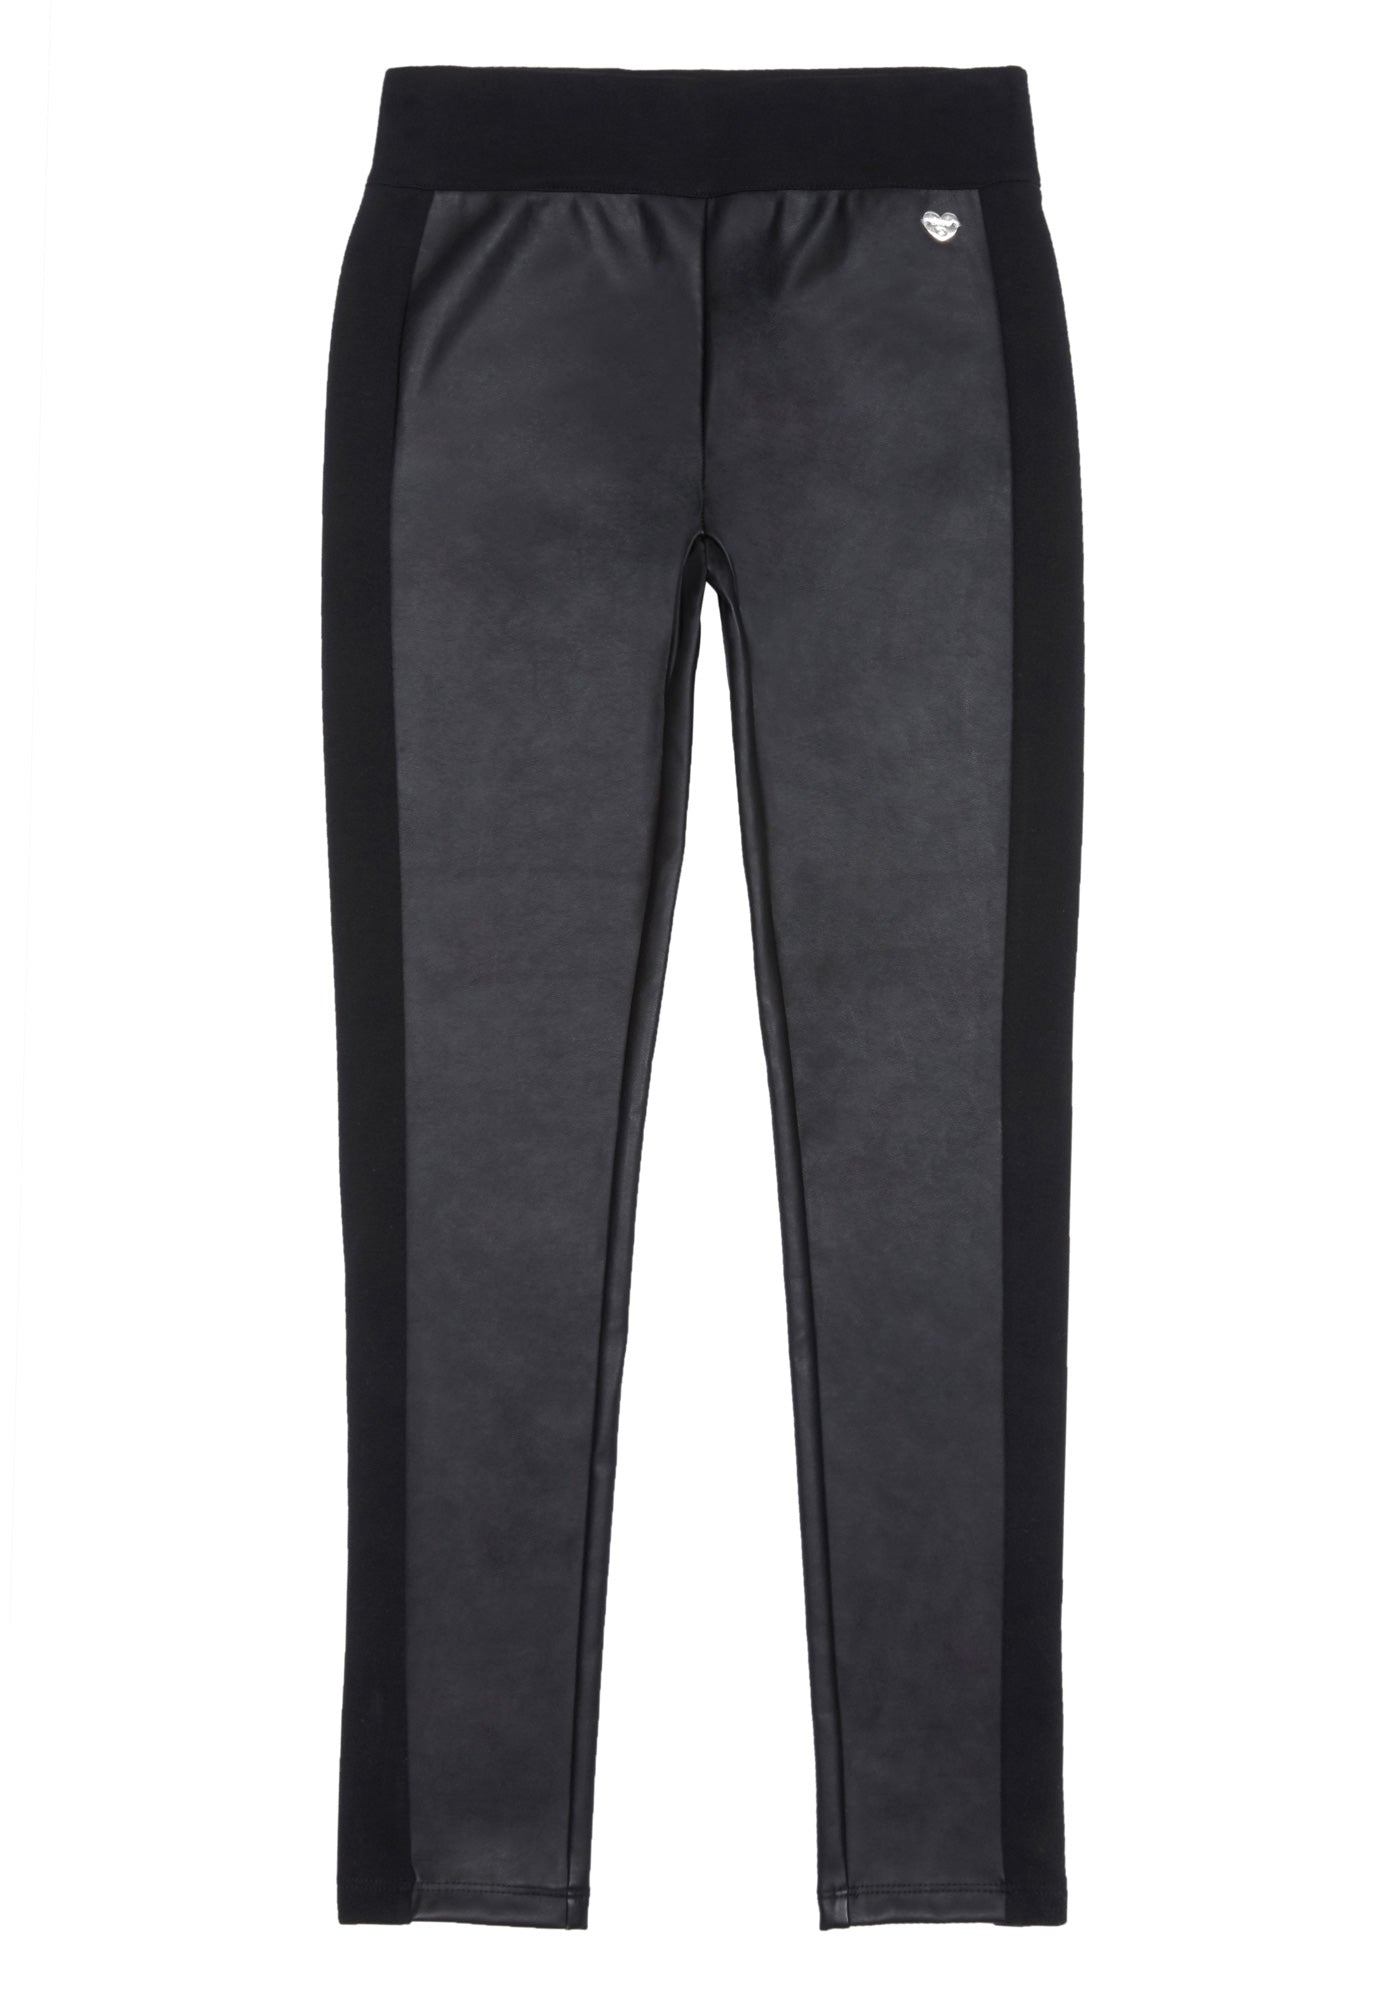 Bebe Women's Girls Faux Leather Ponte Pant, Size S(7-8) in Black Leather/Cotton